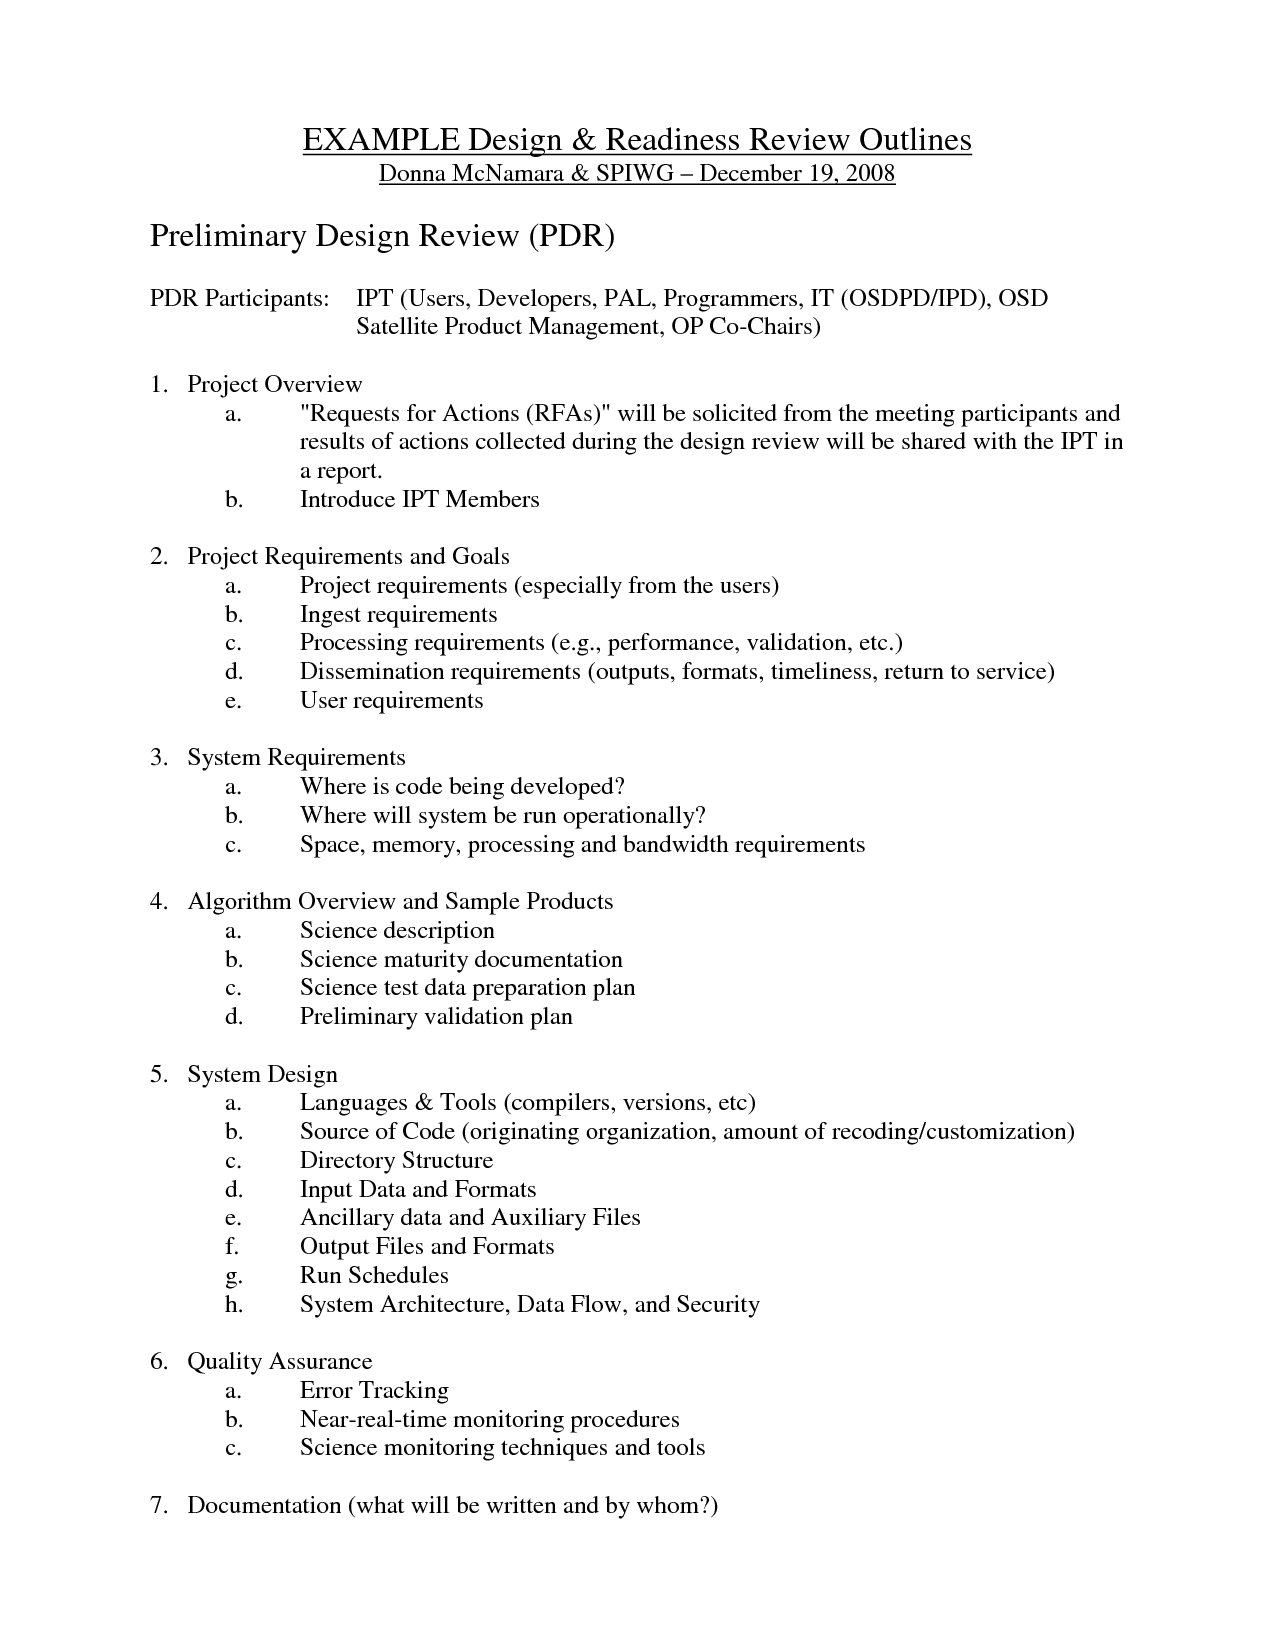 apa literature review template literature review pinterest